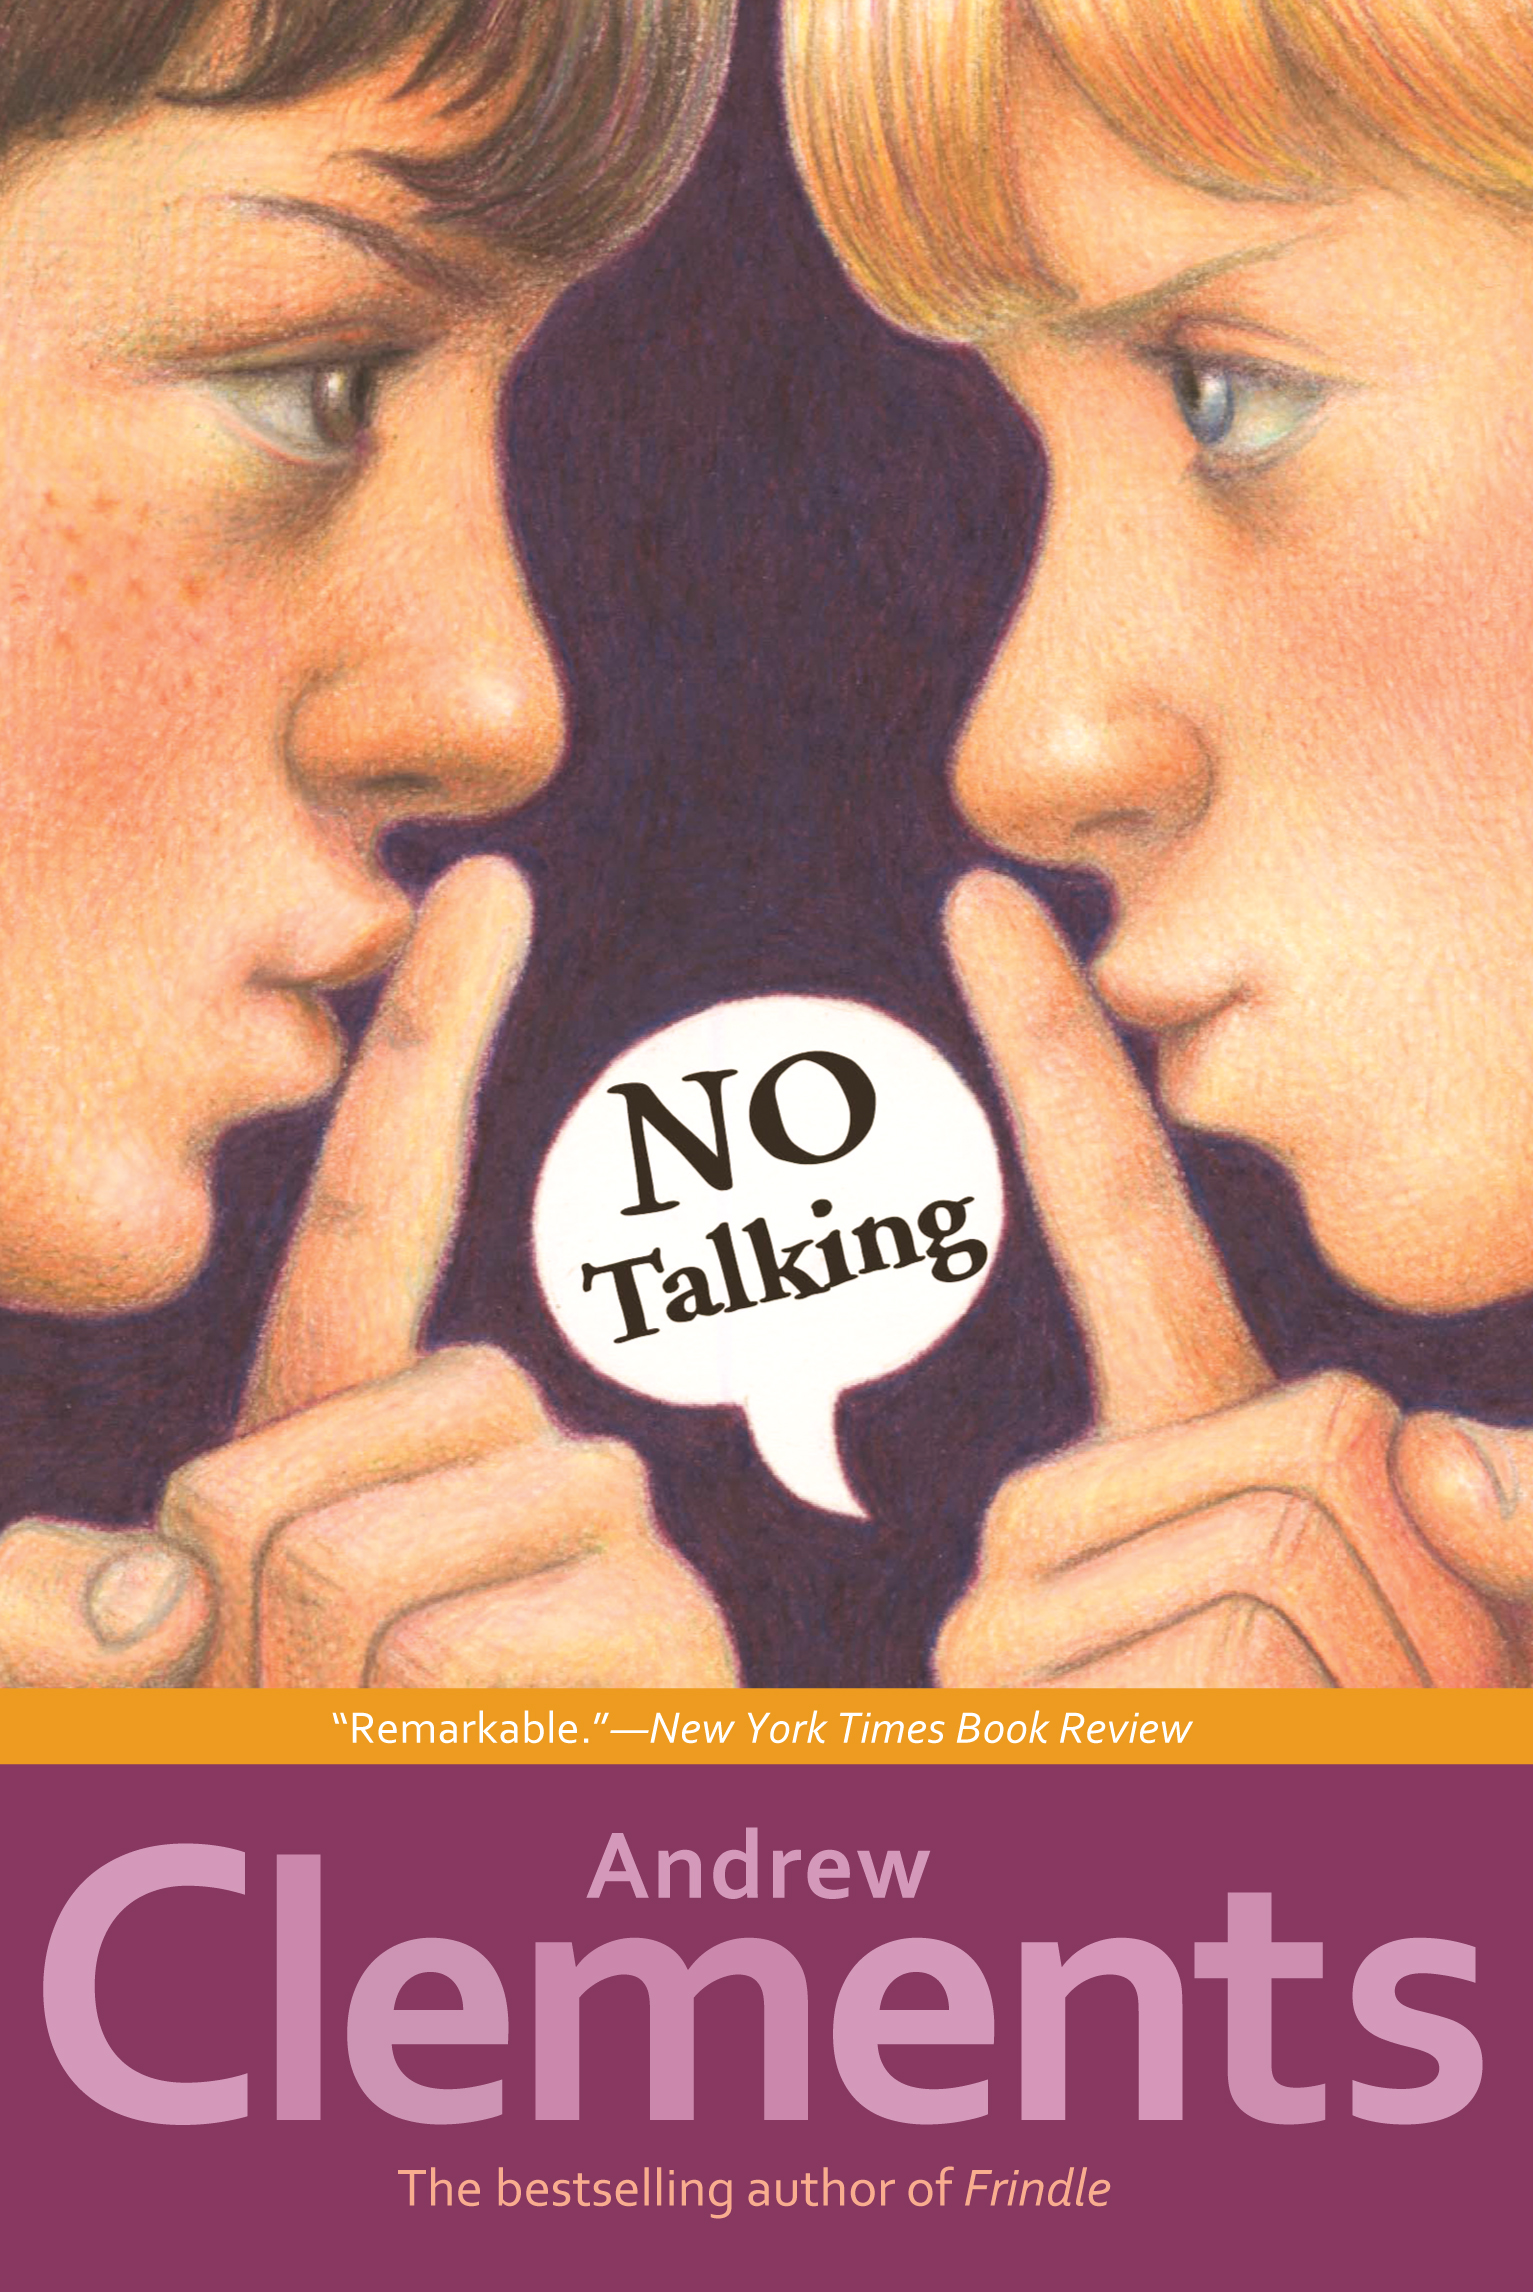 andrew-clements-no-talking.jpg